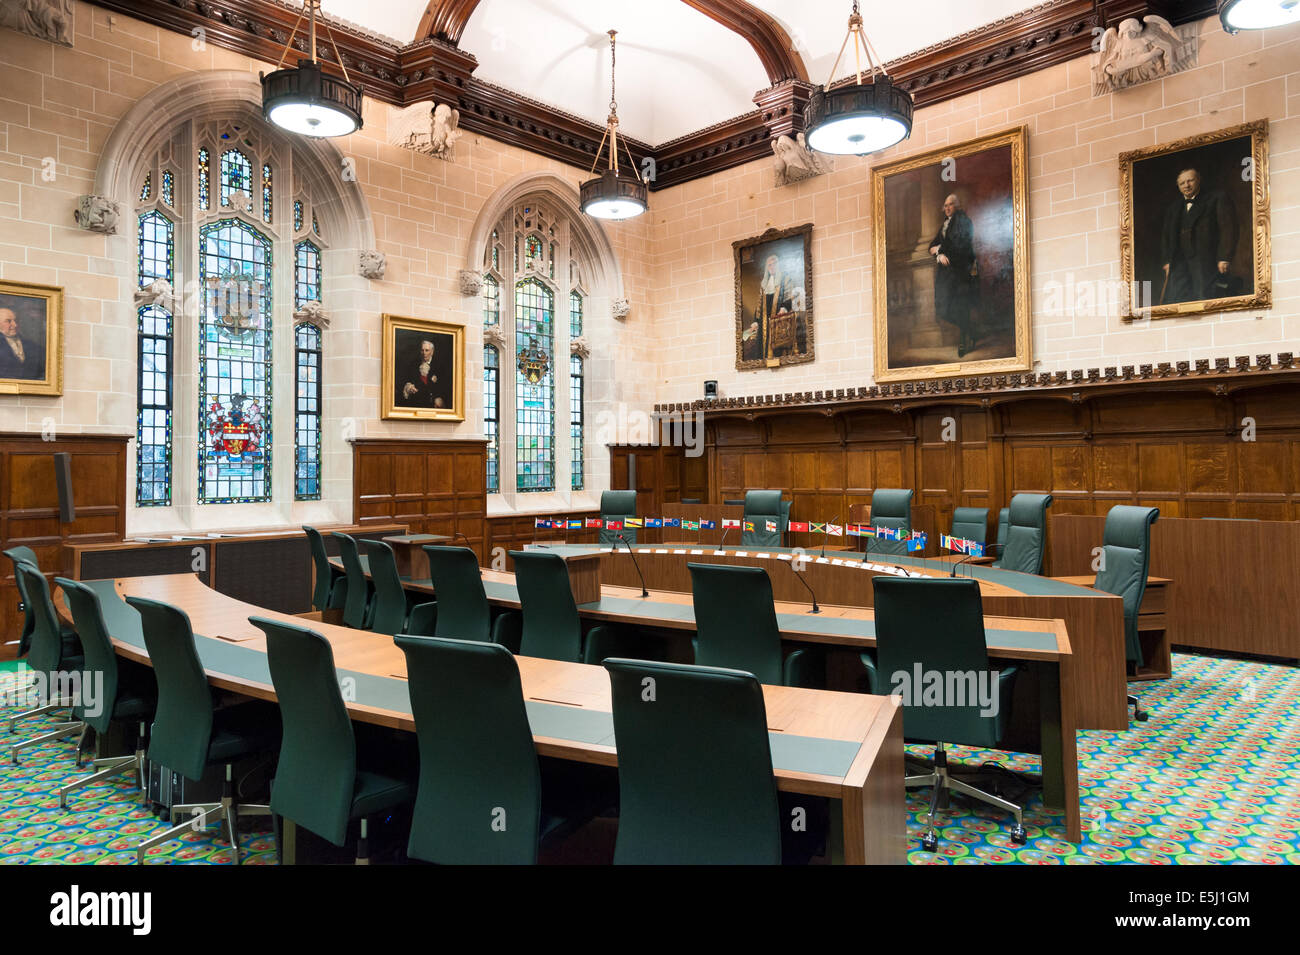 Courtroom 3 of The Supreme Court of the United Kingdom, London, UK - Stock Image